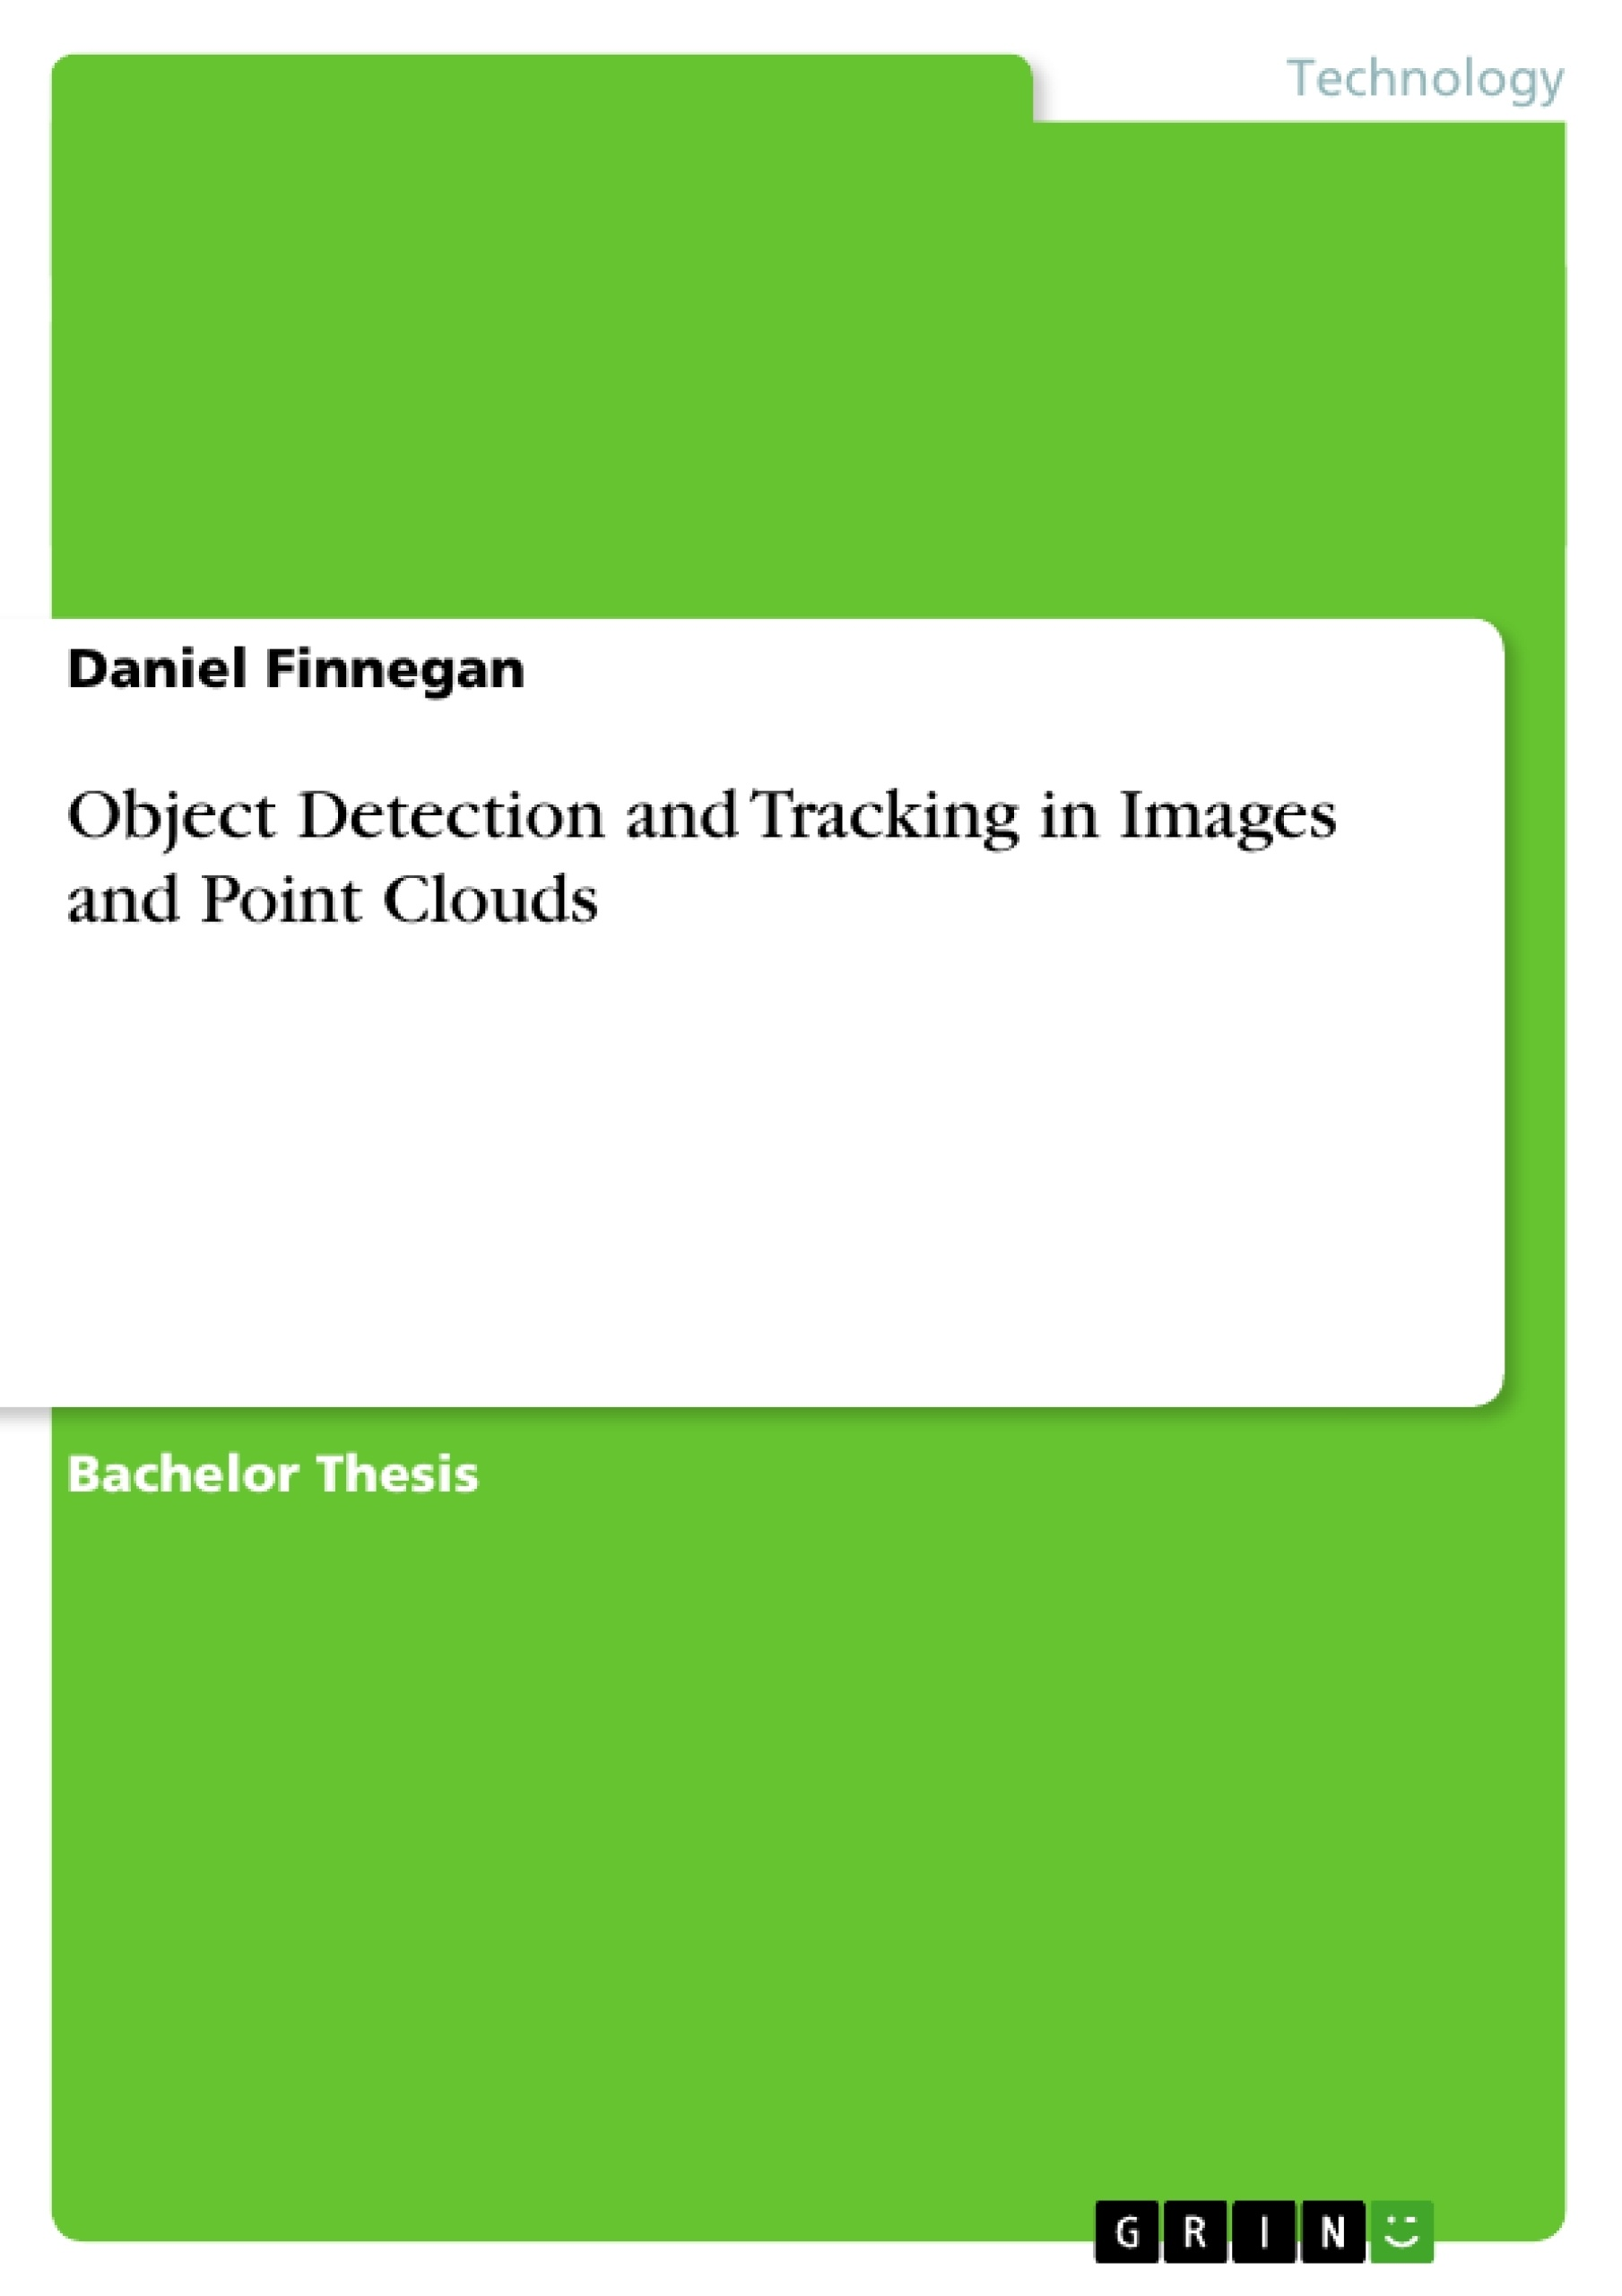 Title: Object Detection and Tracking in Images and Point Clouds